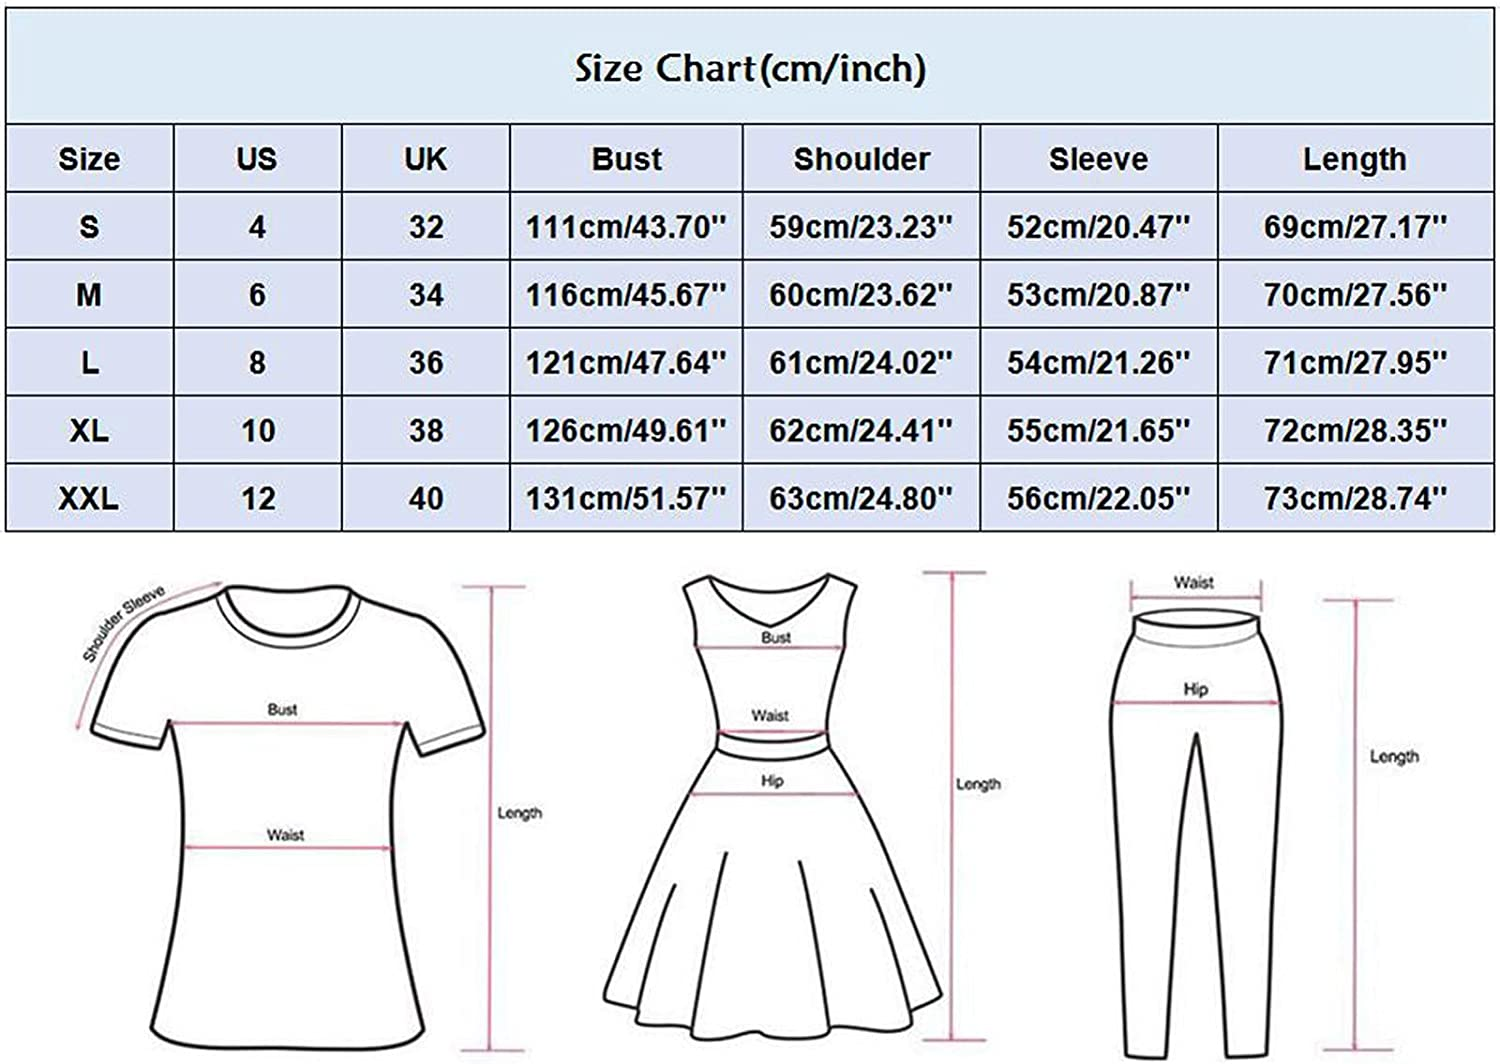 Crewneck Sweatshirts for Women Oversized Vintage Long Sleeve Graphic Vintage Print Casual Loose Pullover Top Shirt